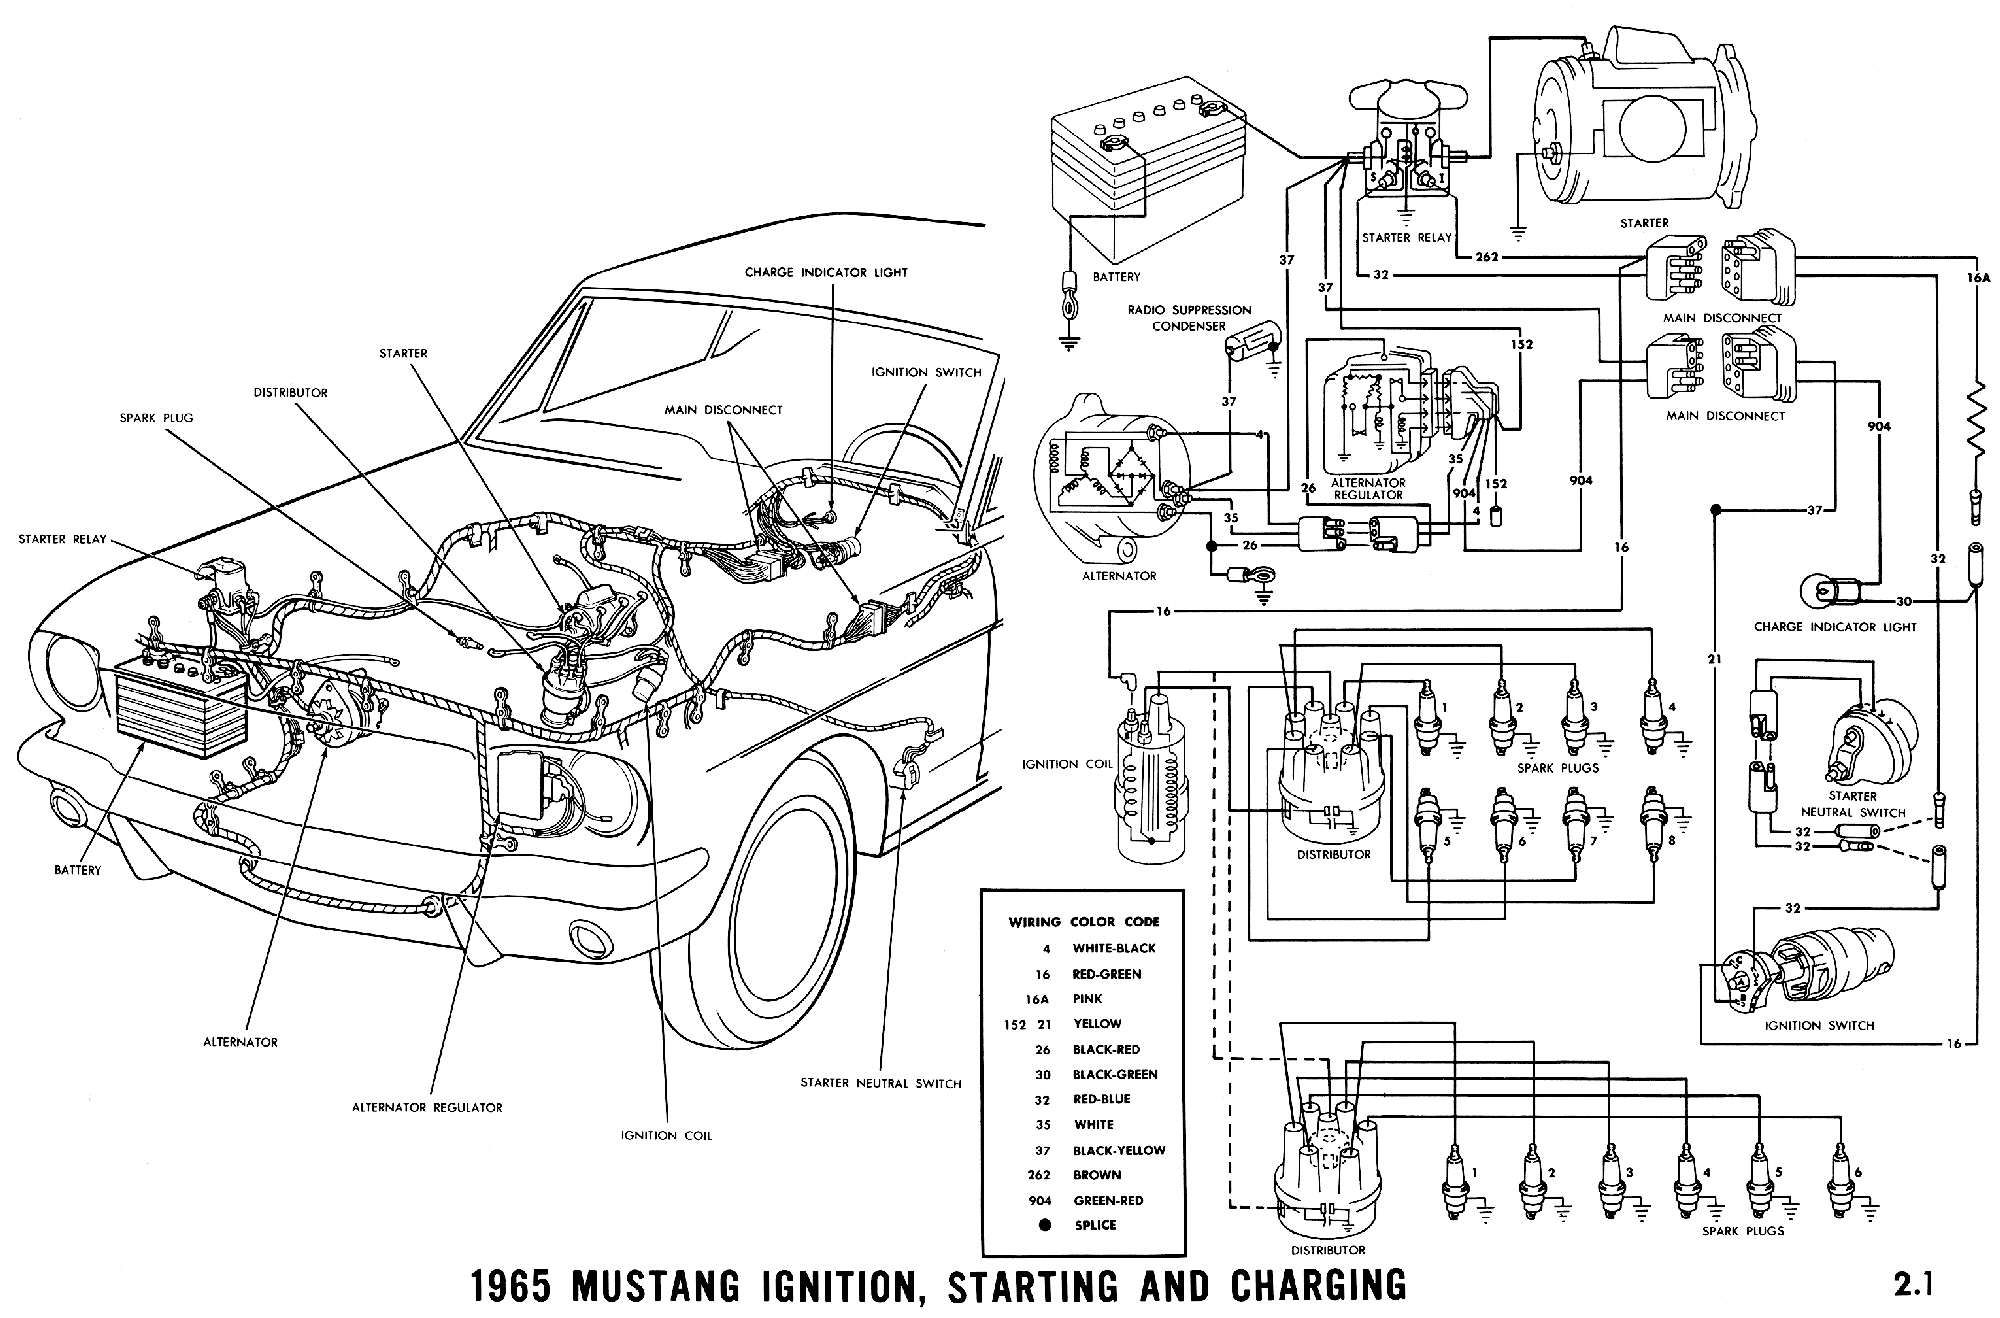 1966 Mustang Light Wiring - Wiring Diagram Meta on 2000 mustang firing order, 2000 mustang owners manual, 2000 ford 3.8 engine diagram, 2000 mustang charging system, 2000 mustang alternator wiring, 2000 mustang jacking points, 2000 mustang solenoid, 2000 mustang tires, 2000 mustang thermostat, 2000 mustang battery, 2000 mustang stereo wiring, 2000 mustang steering, 2000 mustang troubleshooting, 2000 mustang wiper motor, bmw wiring diagram, ford wiring diagram, 2000 mustang repair, 2000 mustang wire harness, chevrolet wiring diagram, mustang 4.6 engine diagram,